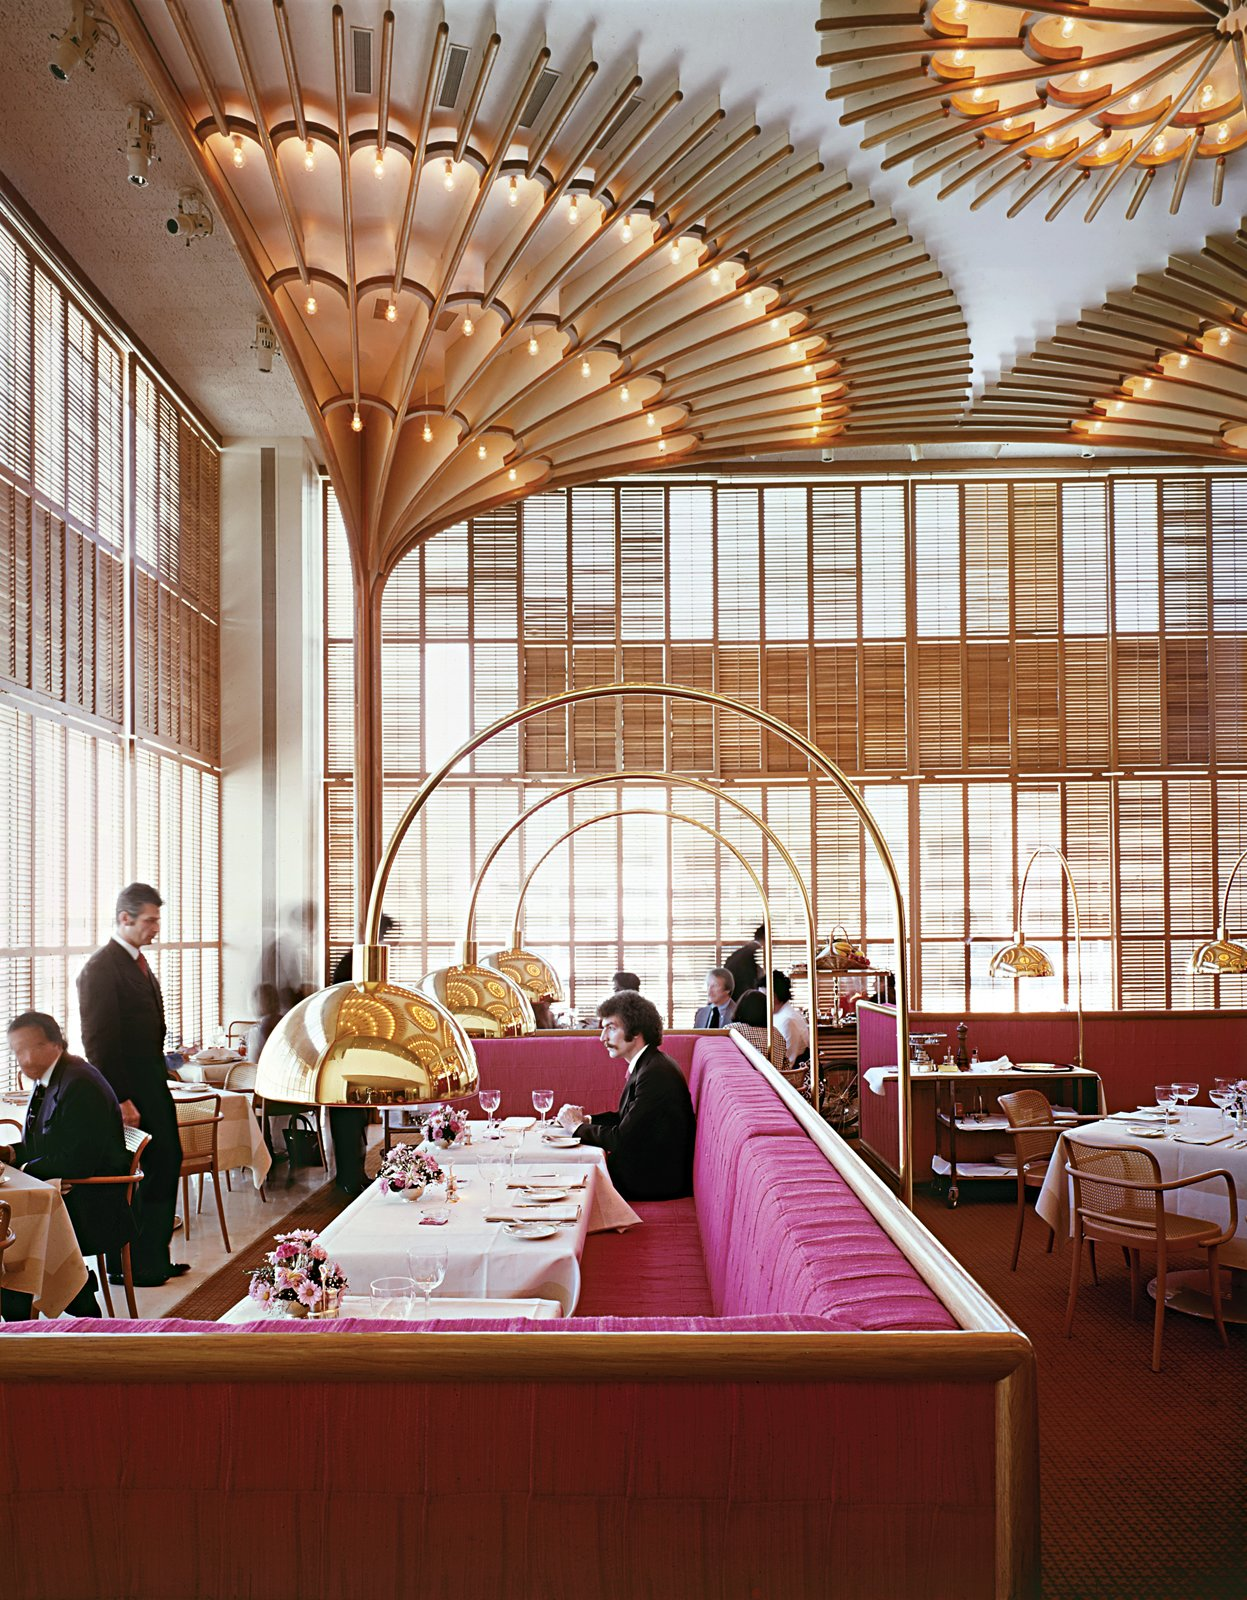 "Warren Platner designed the American Restaurant in Kansas City in 1974 as part of a complex of modern buildings commissioned by the Hall family of Hallmark Cards. He described the bentwood, brass and lipstick-red interior as ""like a huge lace Valentine.""  Timeless Iconic Design from The Opulent Modernism of Platner"